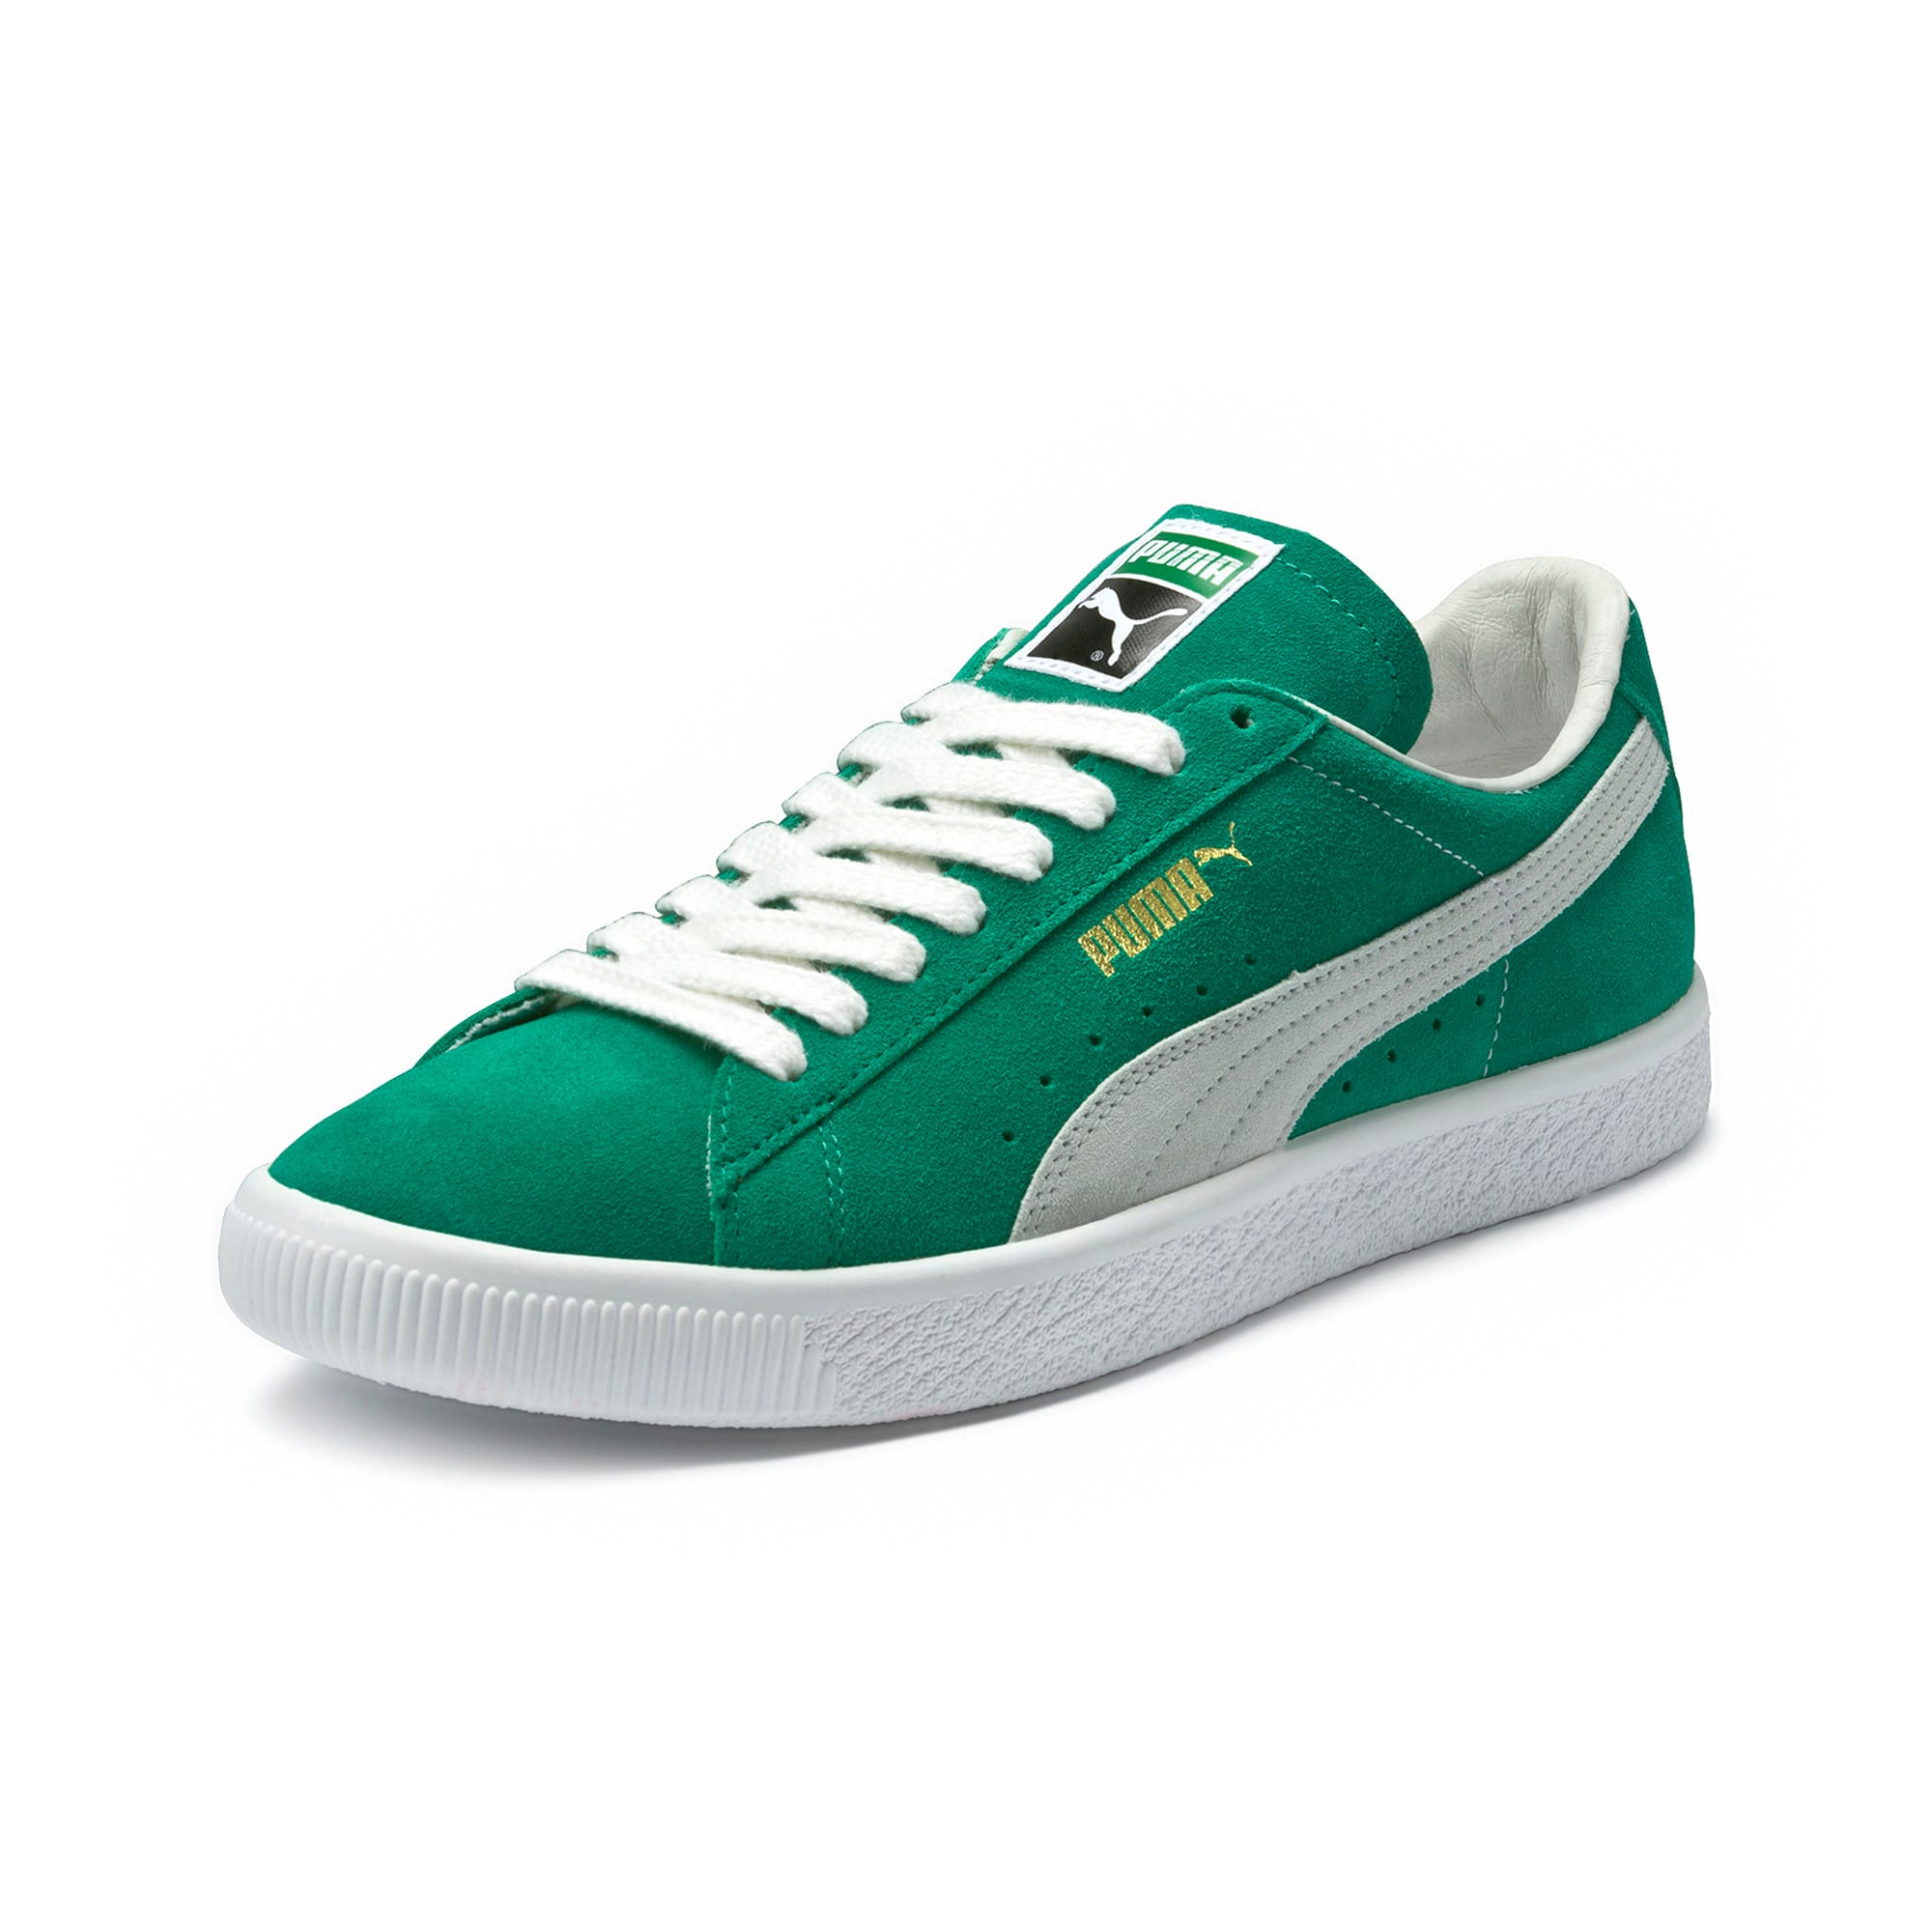 new arrivals b47a2 f284a Suede 90681 Trainers